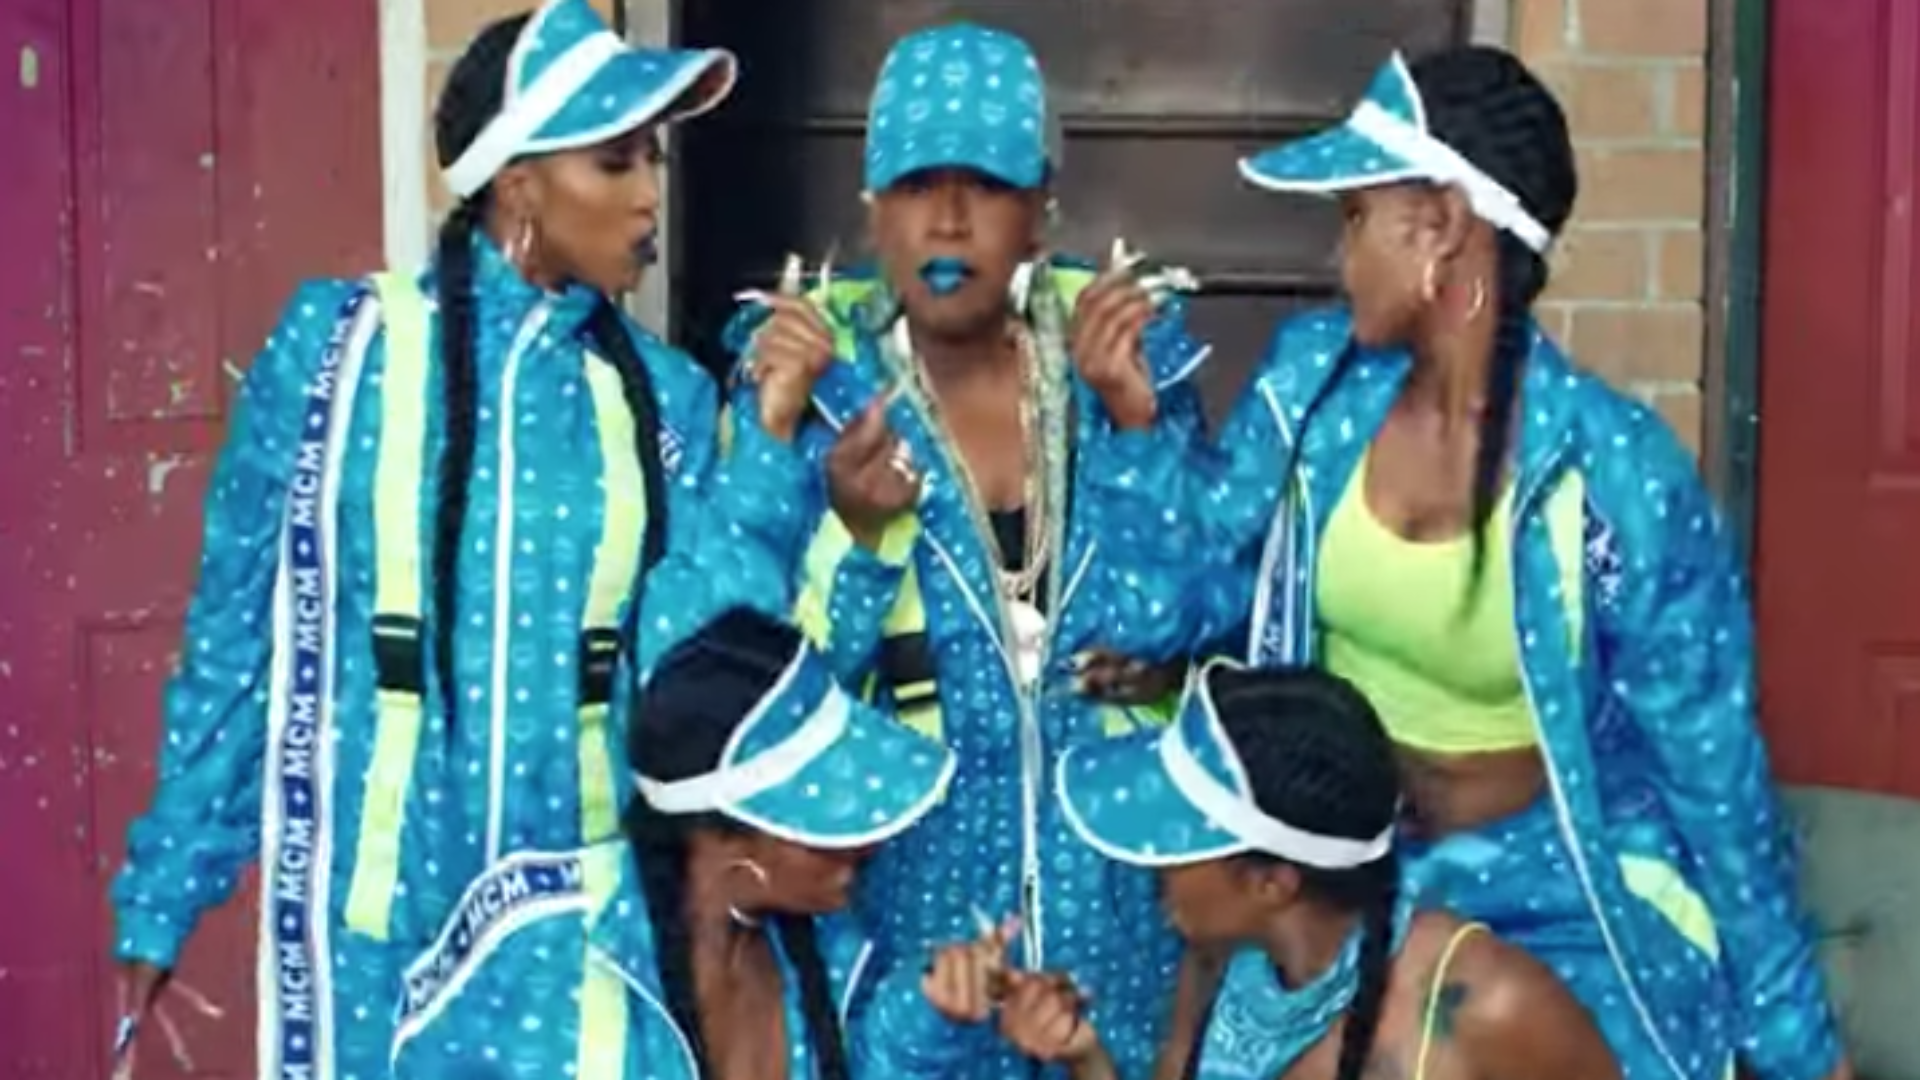 Missy Elliott Sported This MCM Look For 'Throw It Back' Video